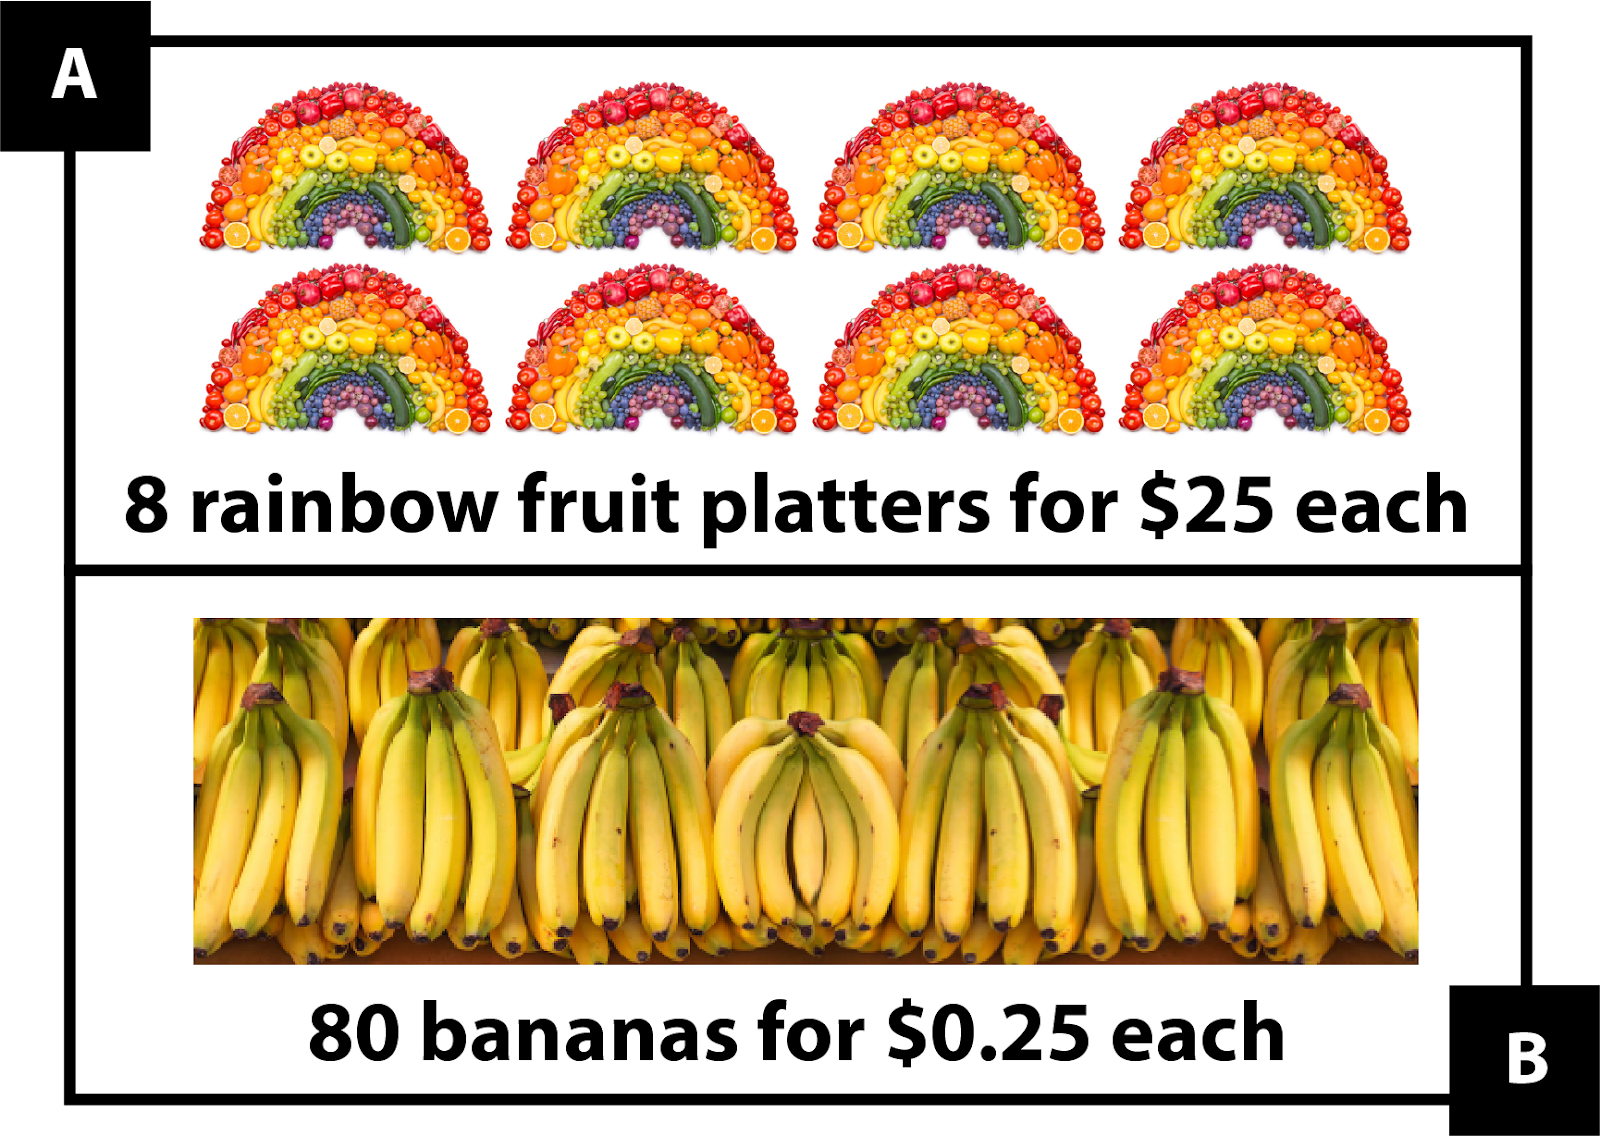 A. shows 8 rainbow fruit platters for $25 each B. shows 80 bananas for $0.25 each